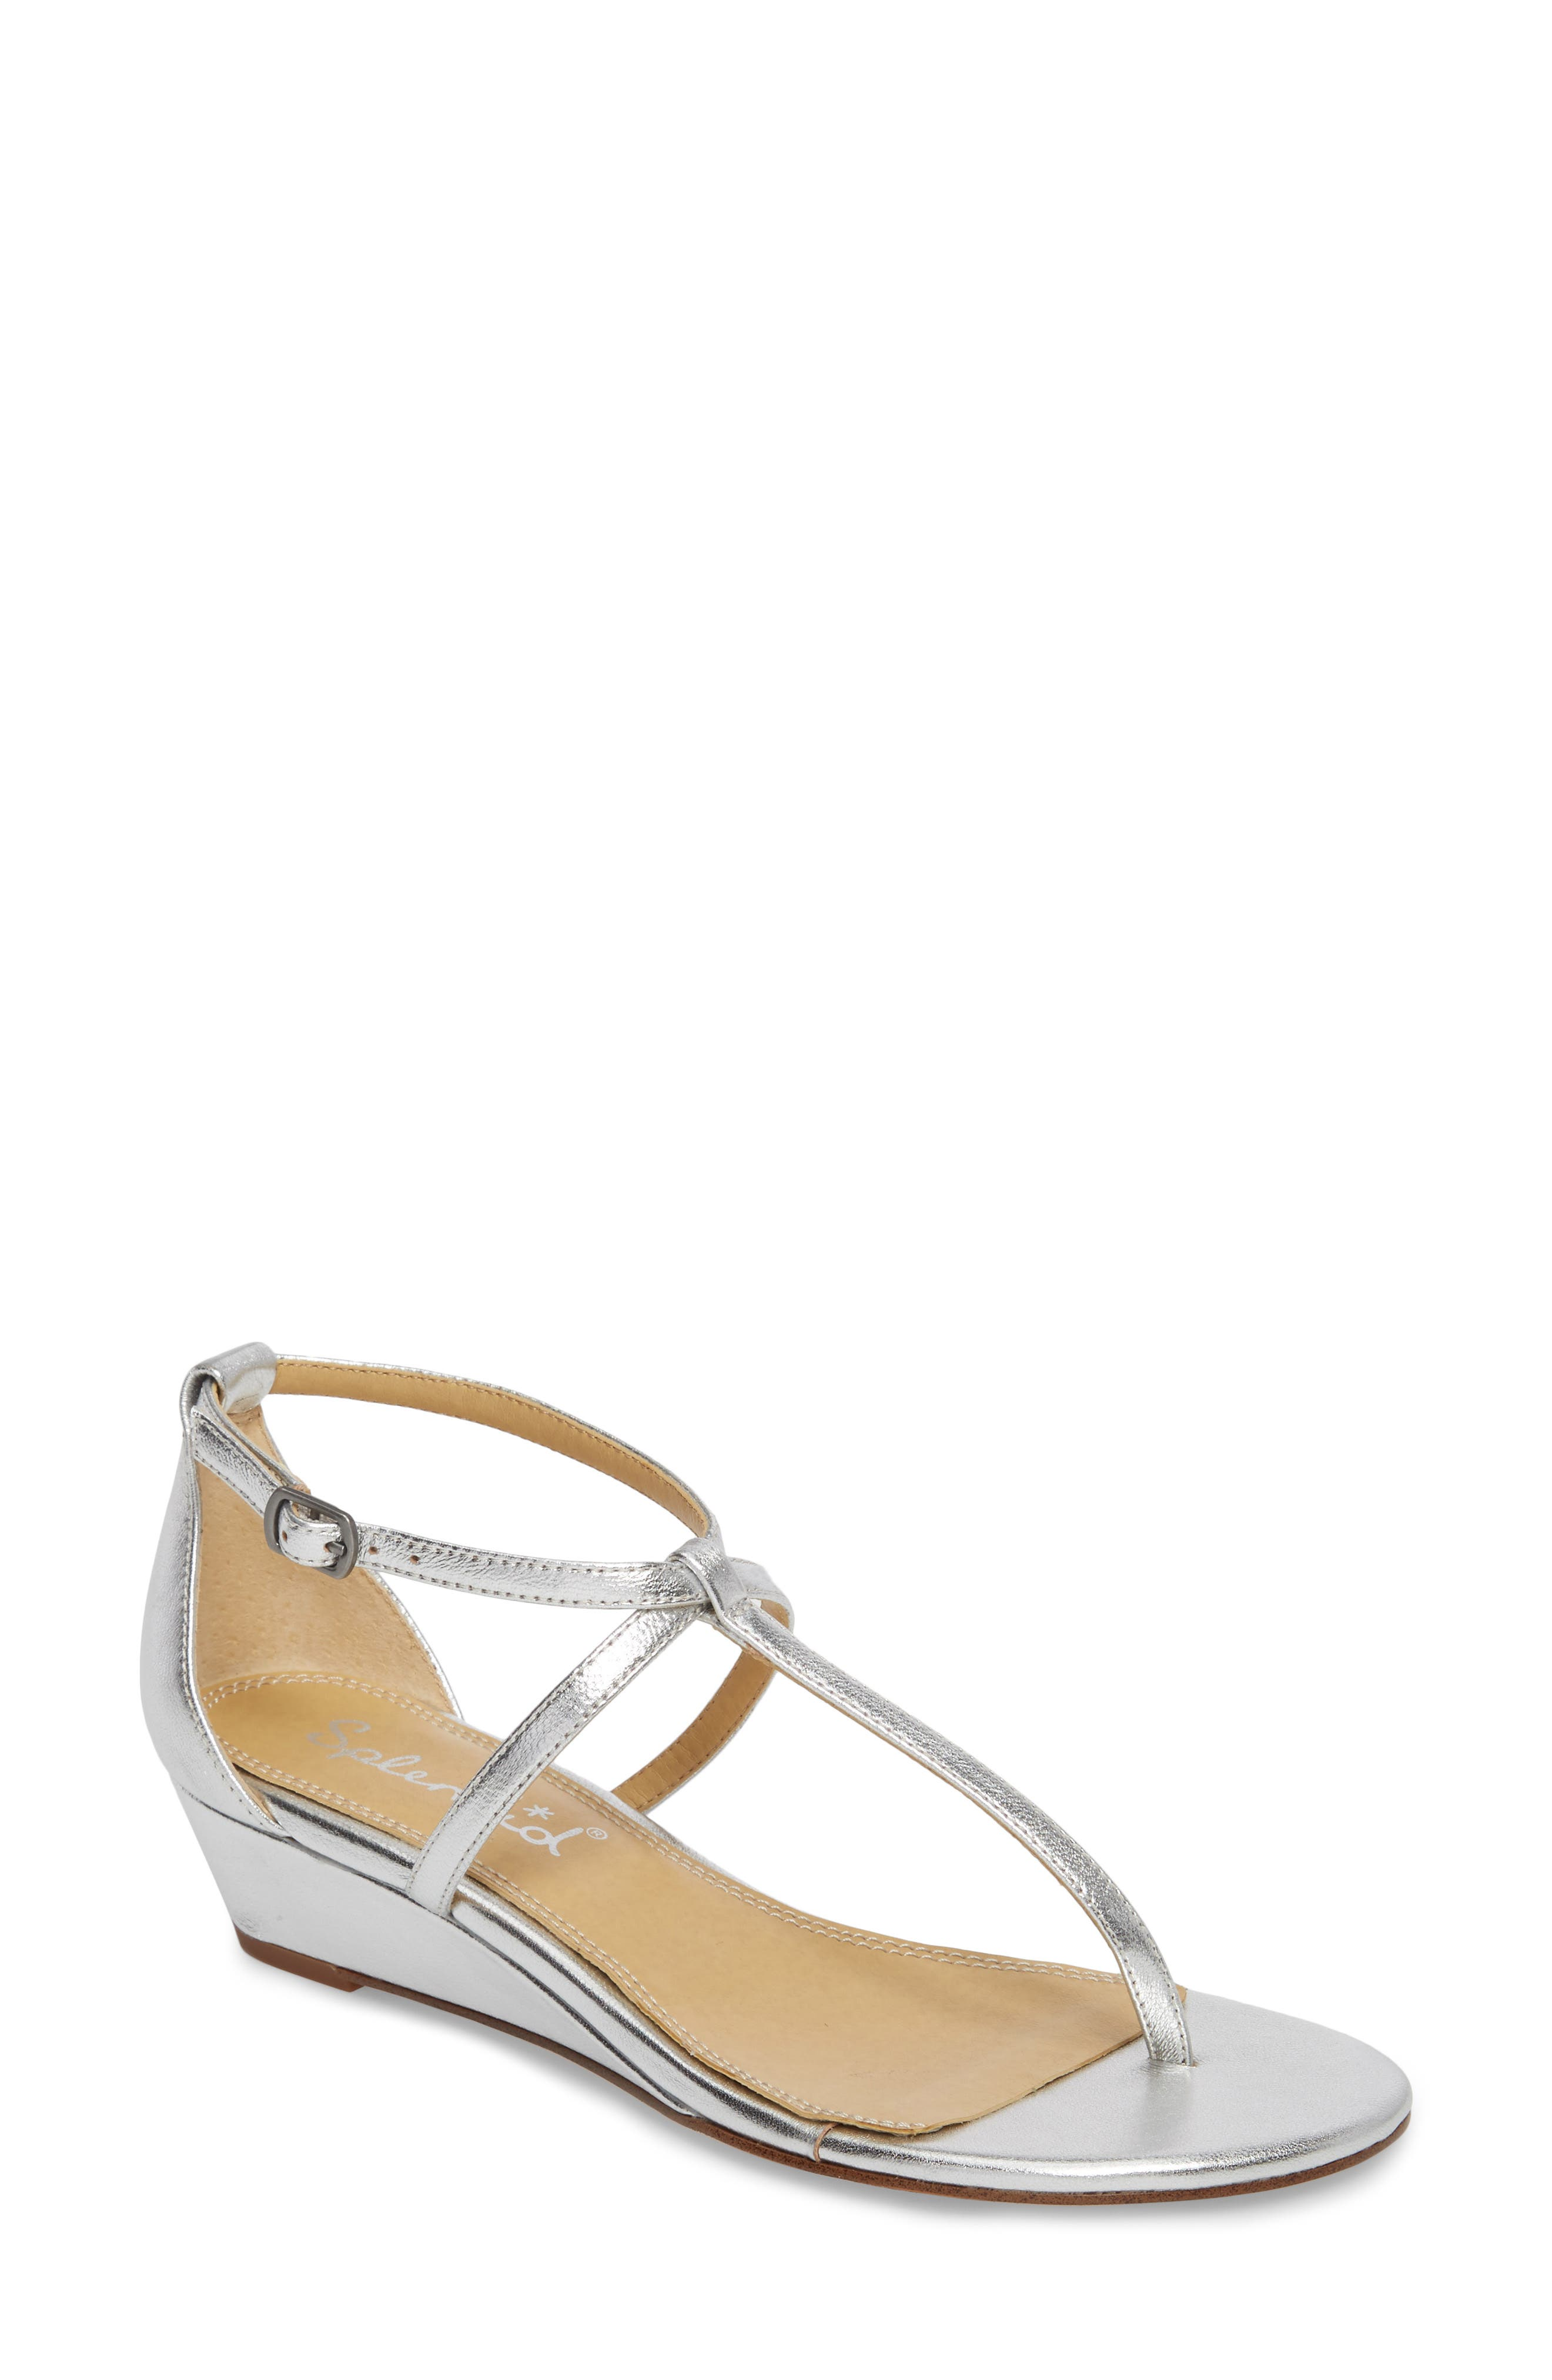 Bryce T-Strap Wedge Sandal,                             Main thumbnail 1, color,                             Silver Metallic Leather